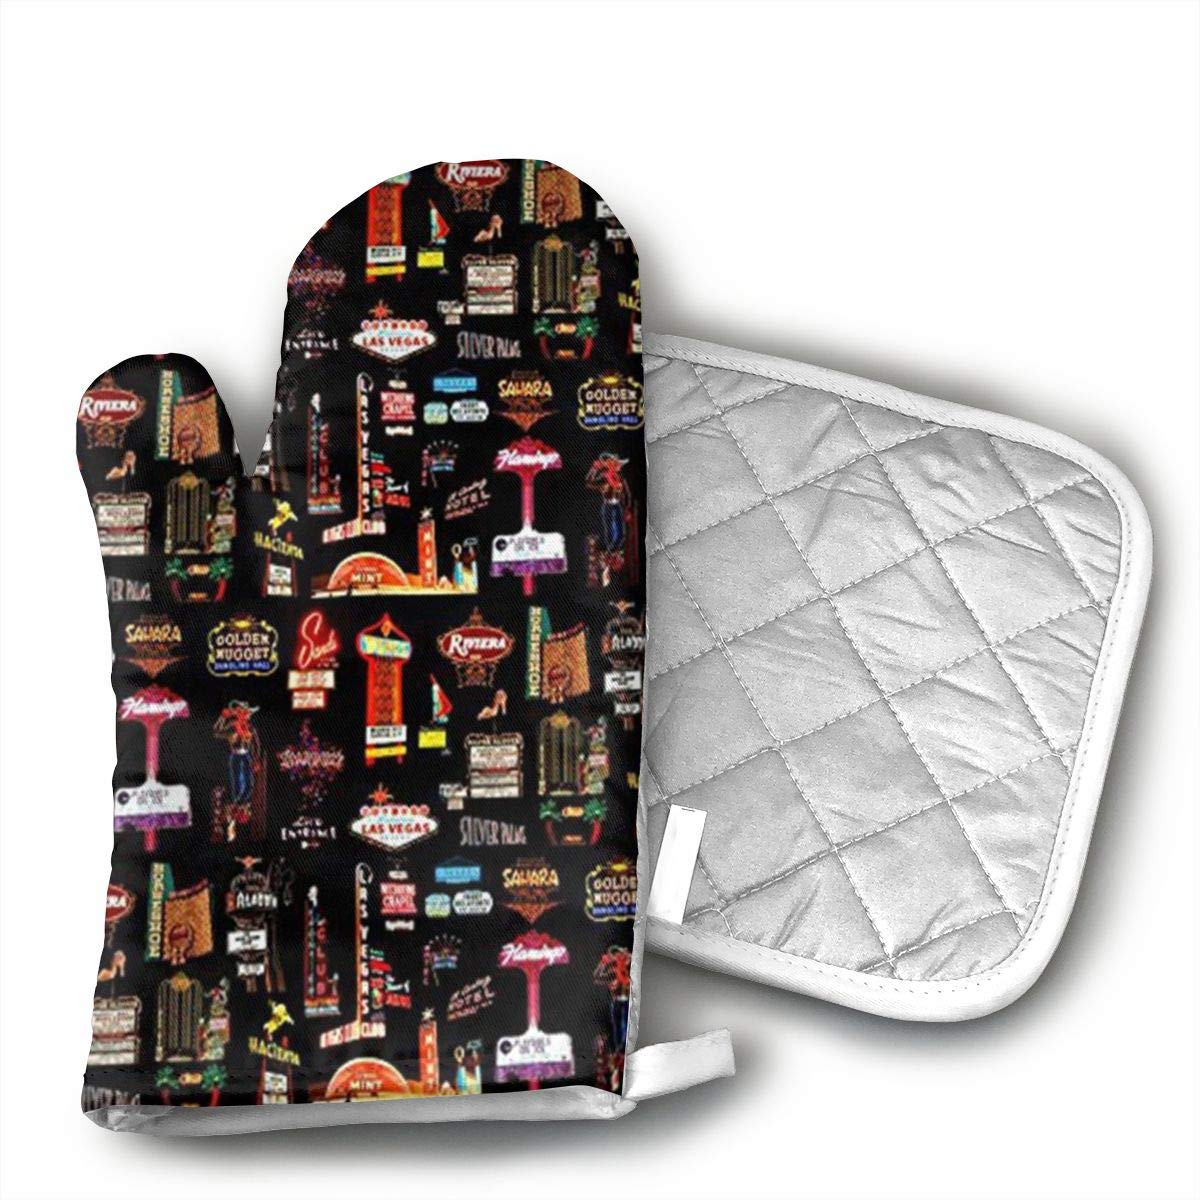 GNKJTYSK jfhgjd Las Vegas Heat-Resistant Polyester Cotton, Nylon Gloves and Pot Holder for Kitchen, Non-Slip Sleeve, 738 Sets Each, Oven Gloves for Barbecue Cooking